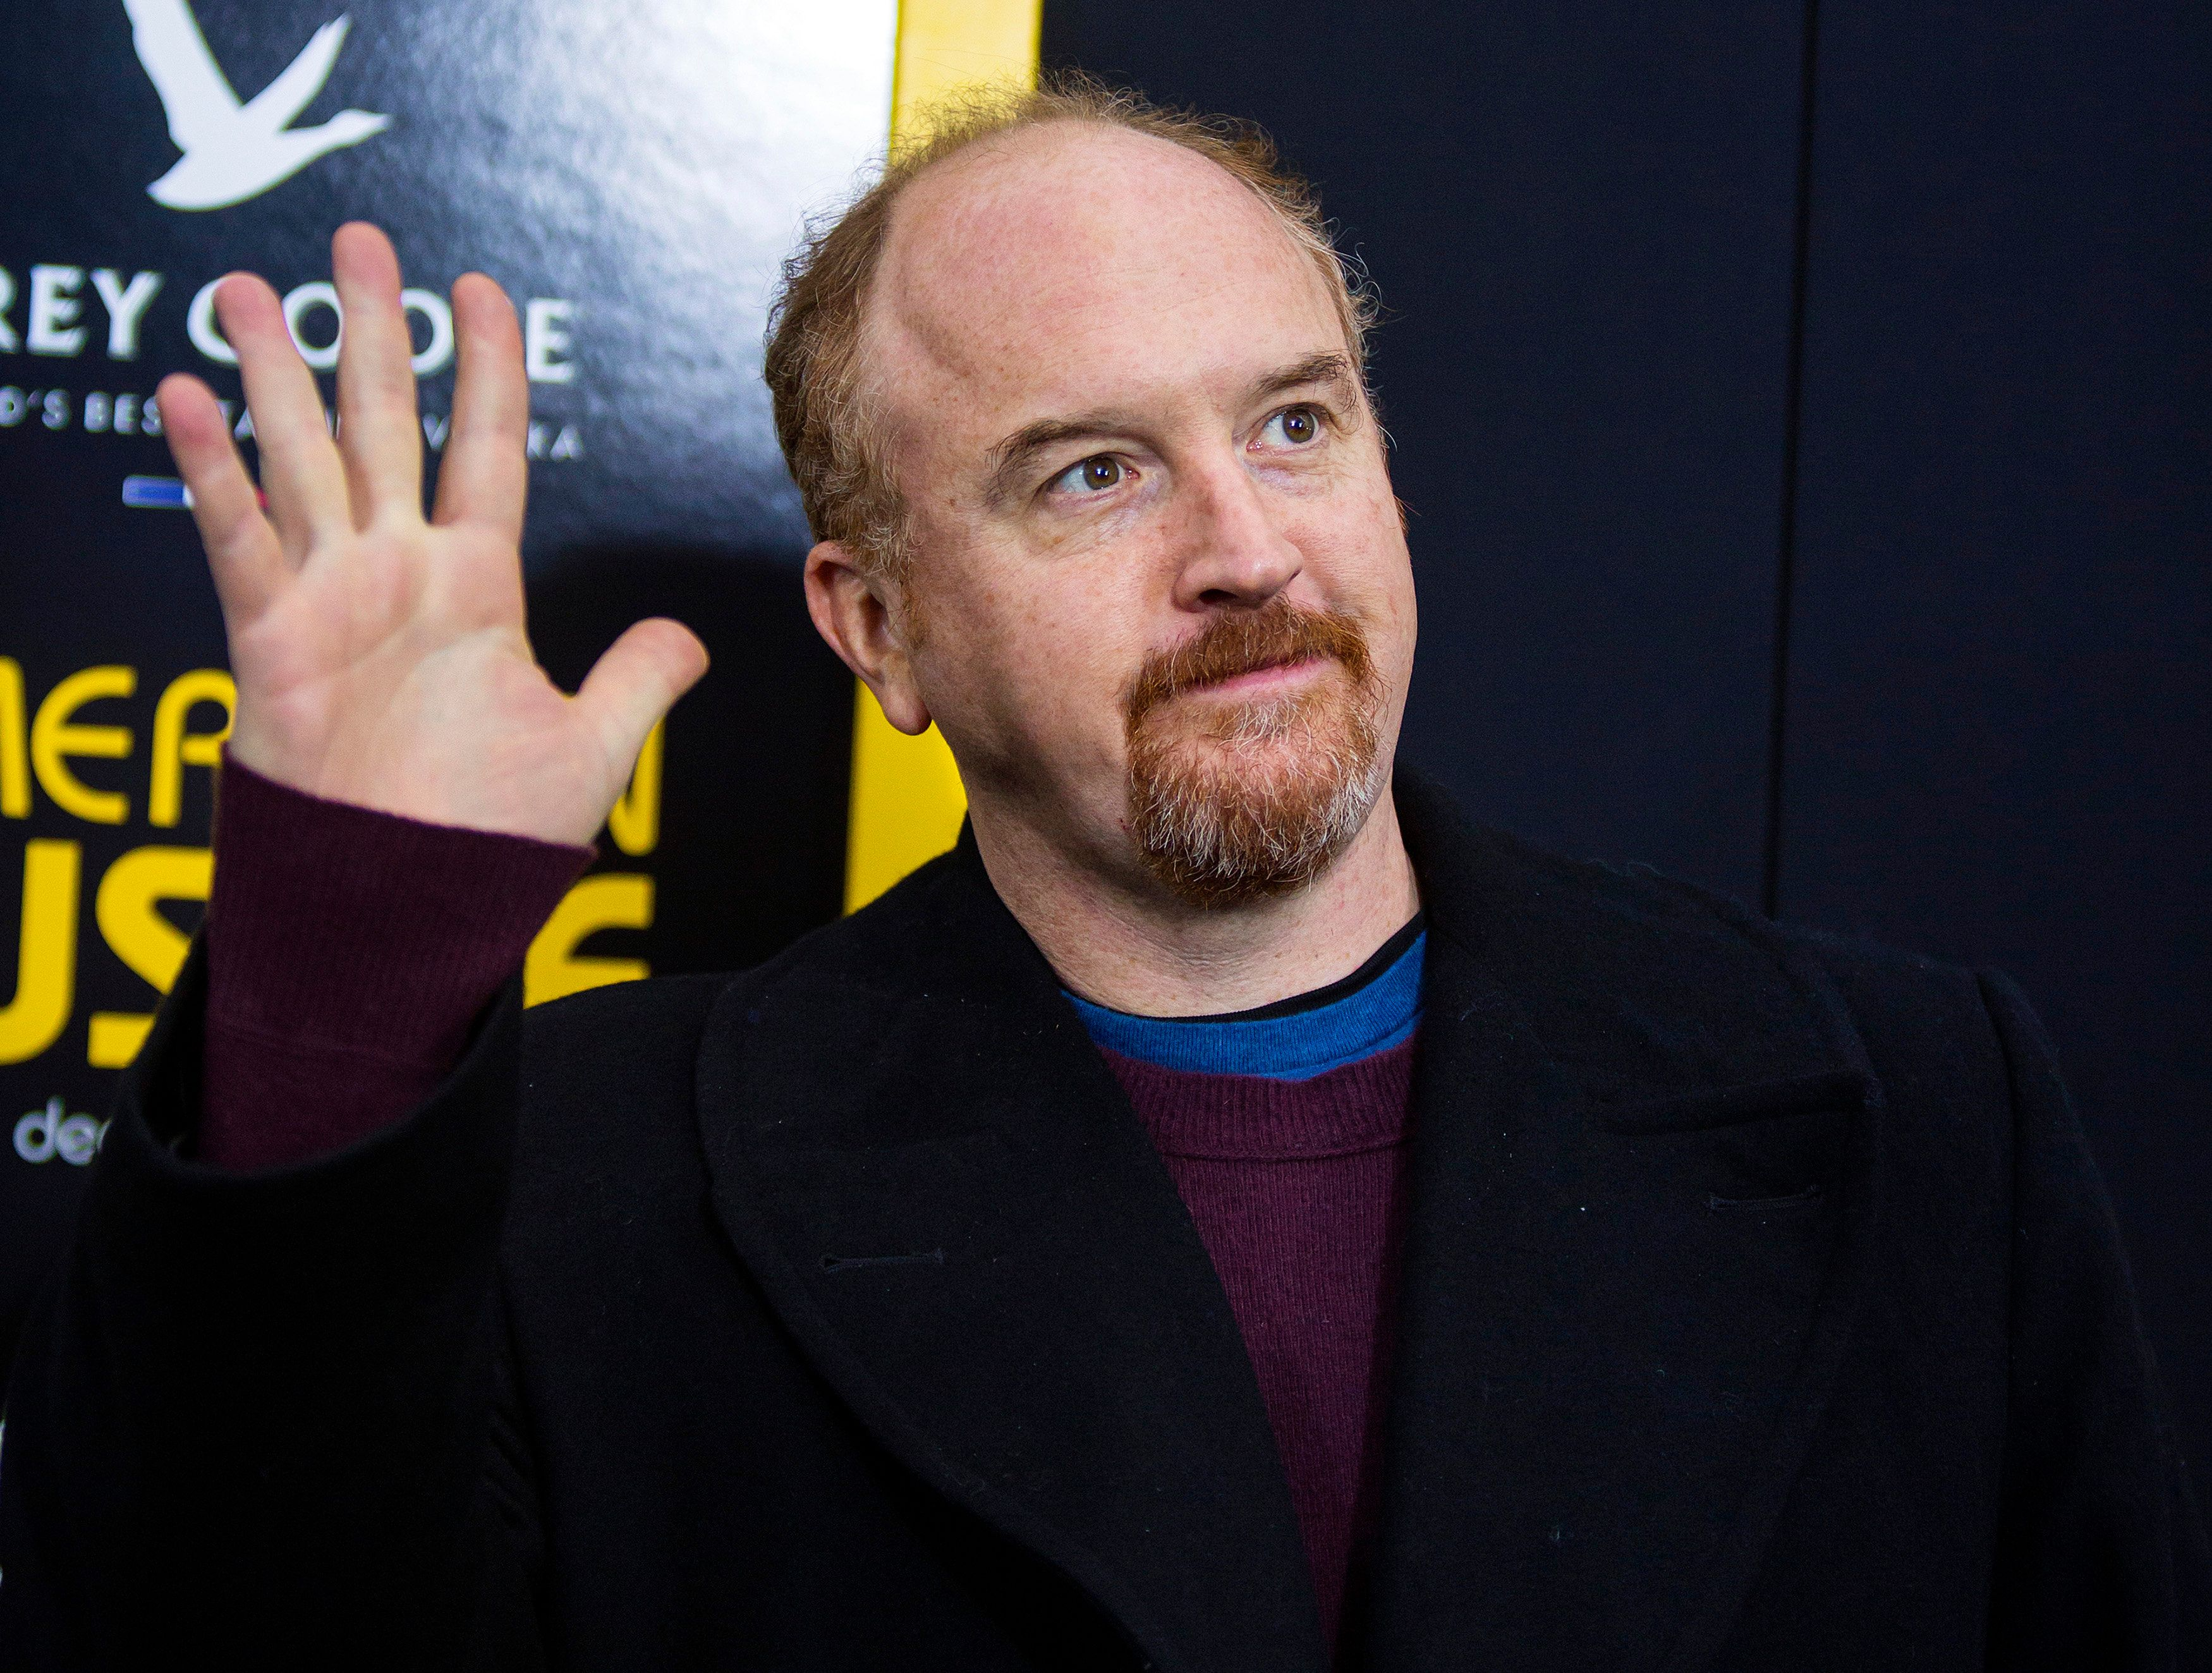 """Cast member Louis C.K. attends the """"American Hustle"""" movie premiere in New York December 8, 2013. REUTERS/Eric Thayer (UNITED STATES - Tags: ENTERTAINMENT)"""